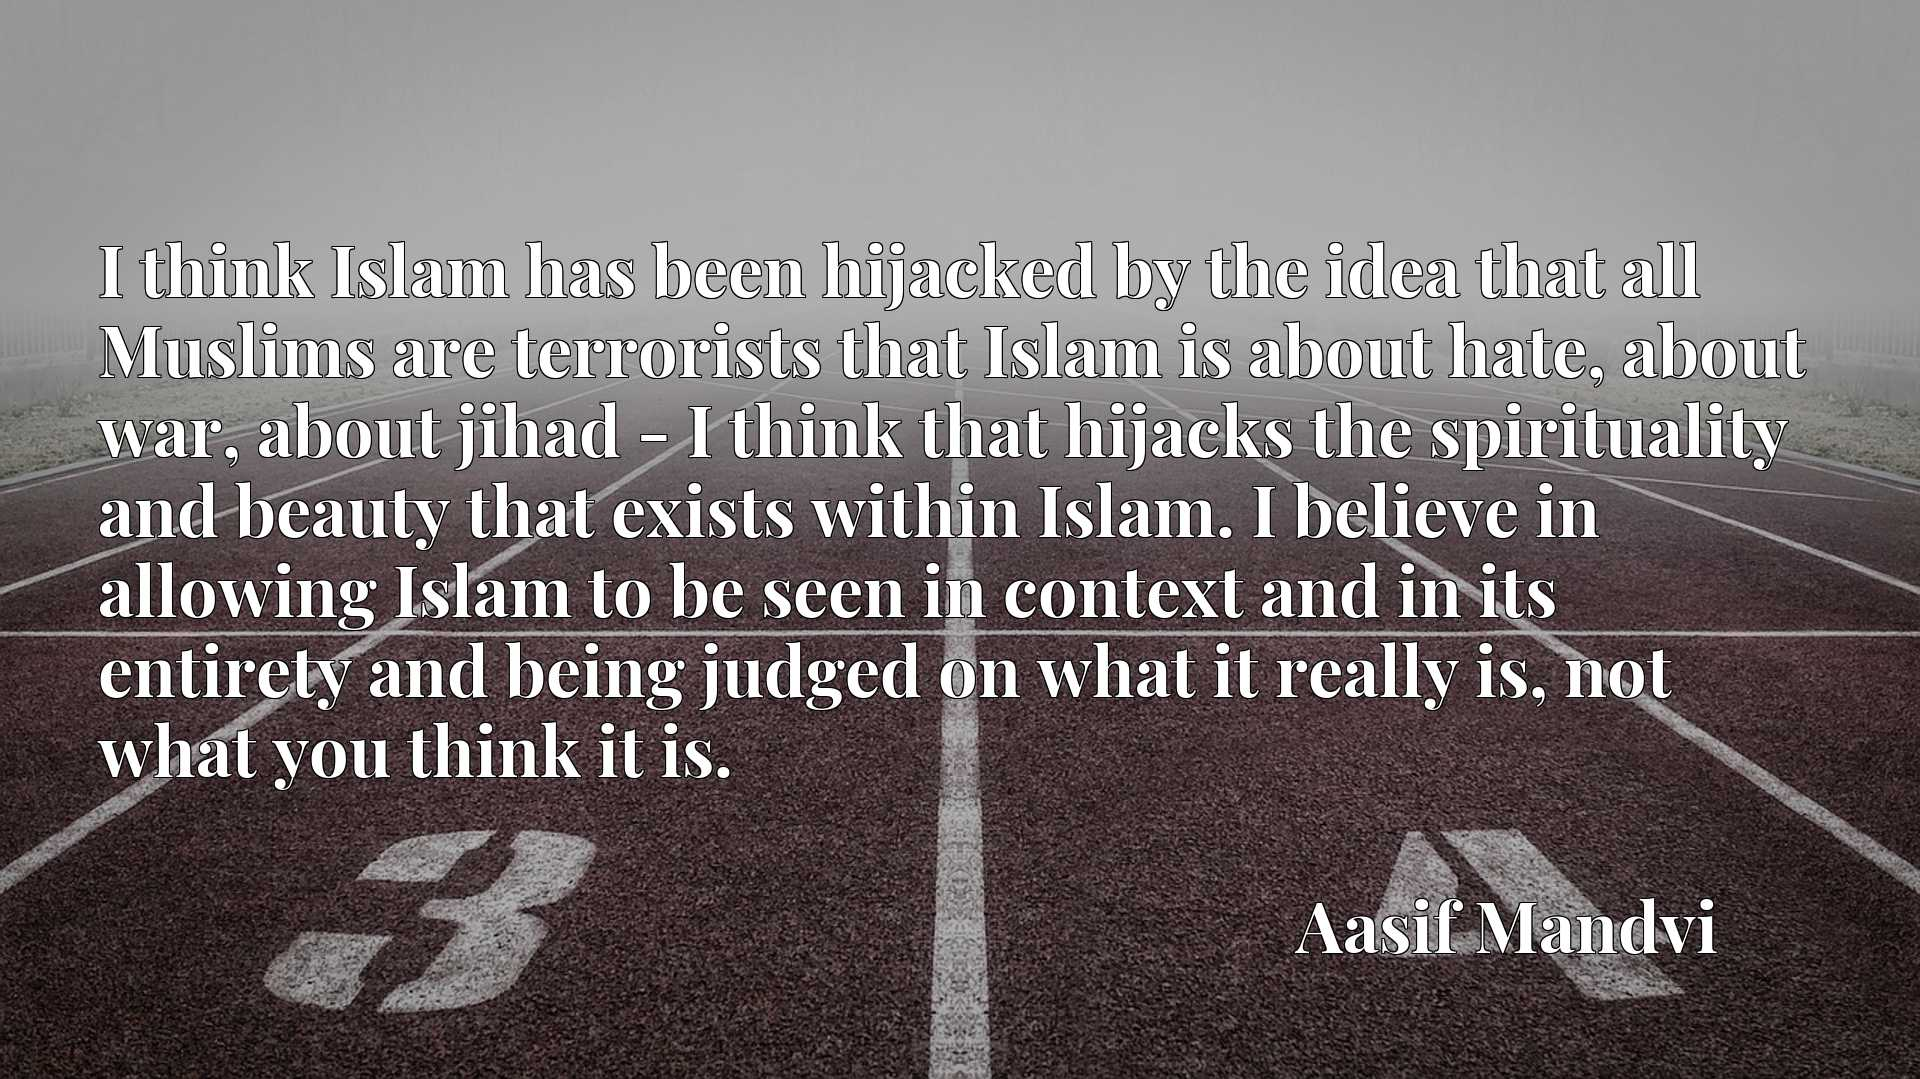 I think Islam has been hijacked by the idea that all Muslims are terrorists that Islam is about hate, about war, about jihad - I think that hijacks the spirituality and beauty that exists within Islam. I believe in allowing Islam to be seen in context and in its entirety and being judged on what it really is, not what you think it is.